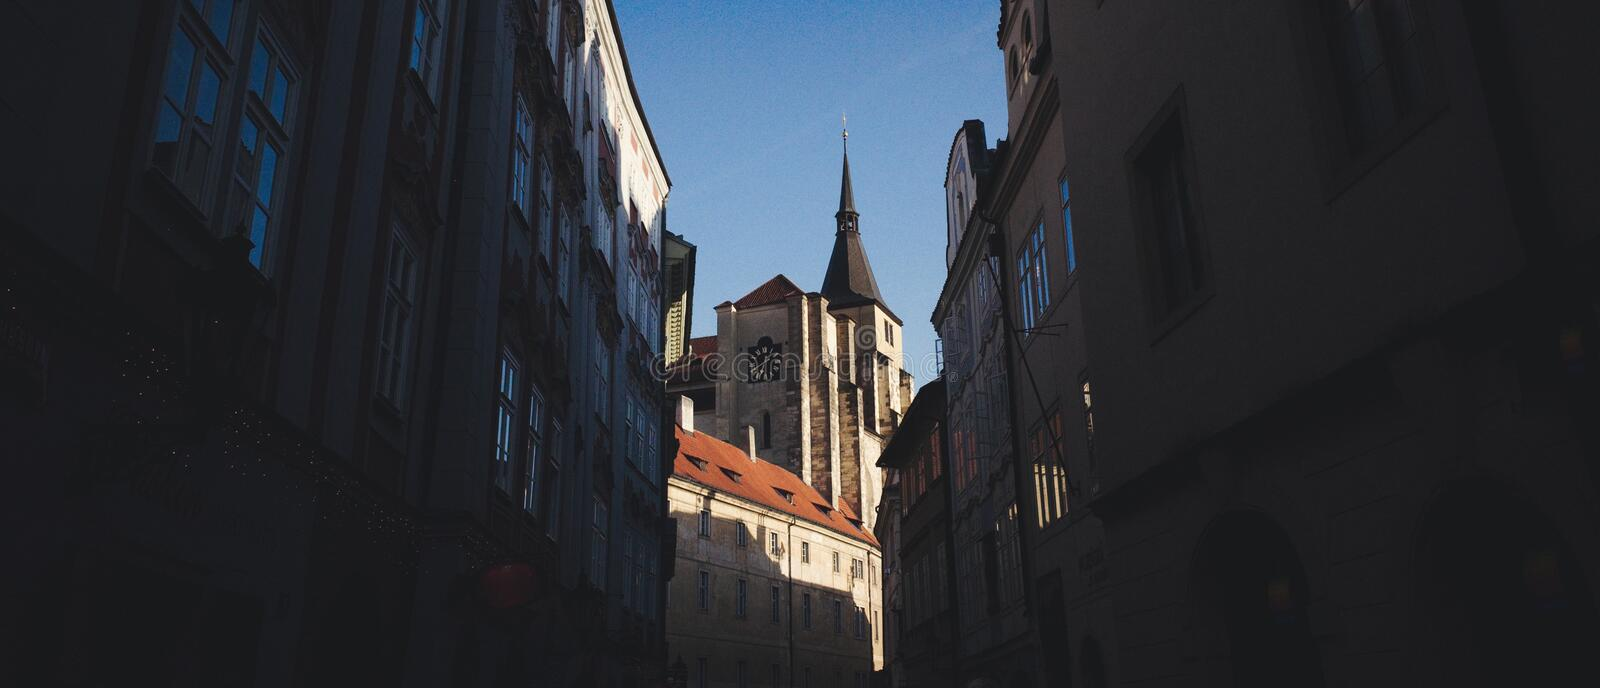 Curch in Prague, Czech Republic. View of a church with buildings in the shadow. Prague, Czech Republic royalty free stock photos